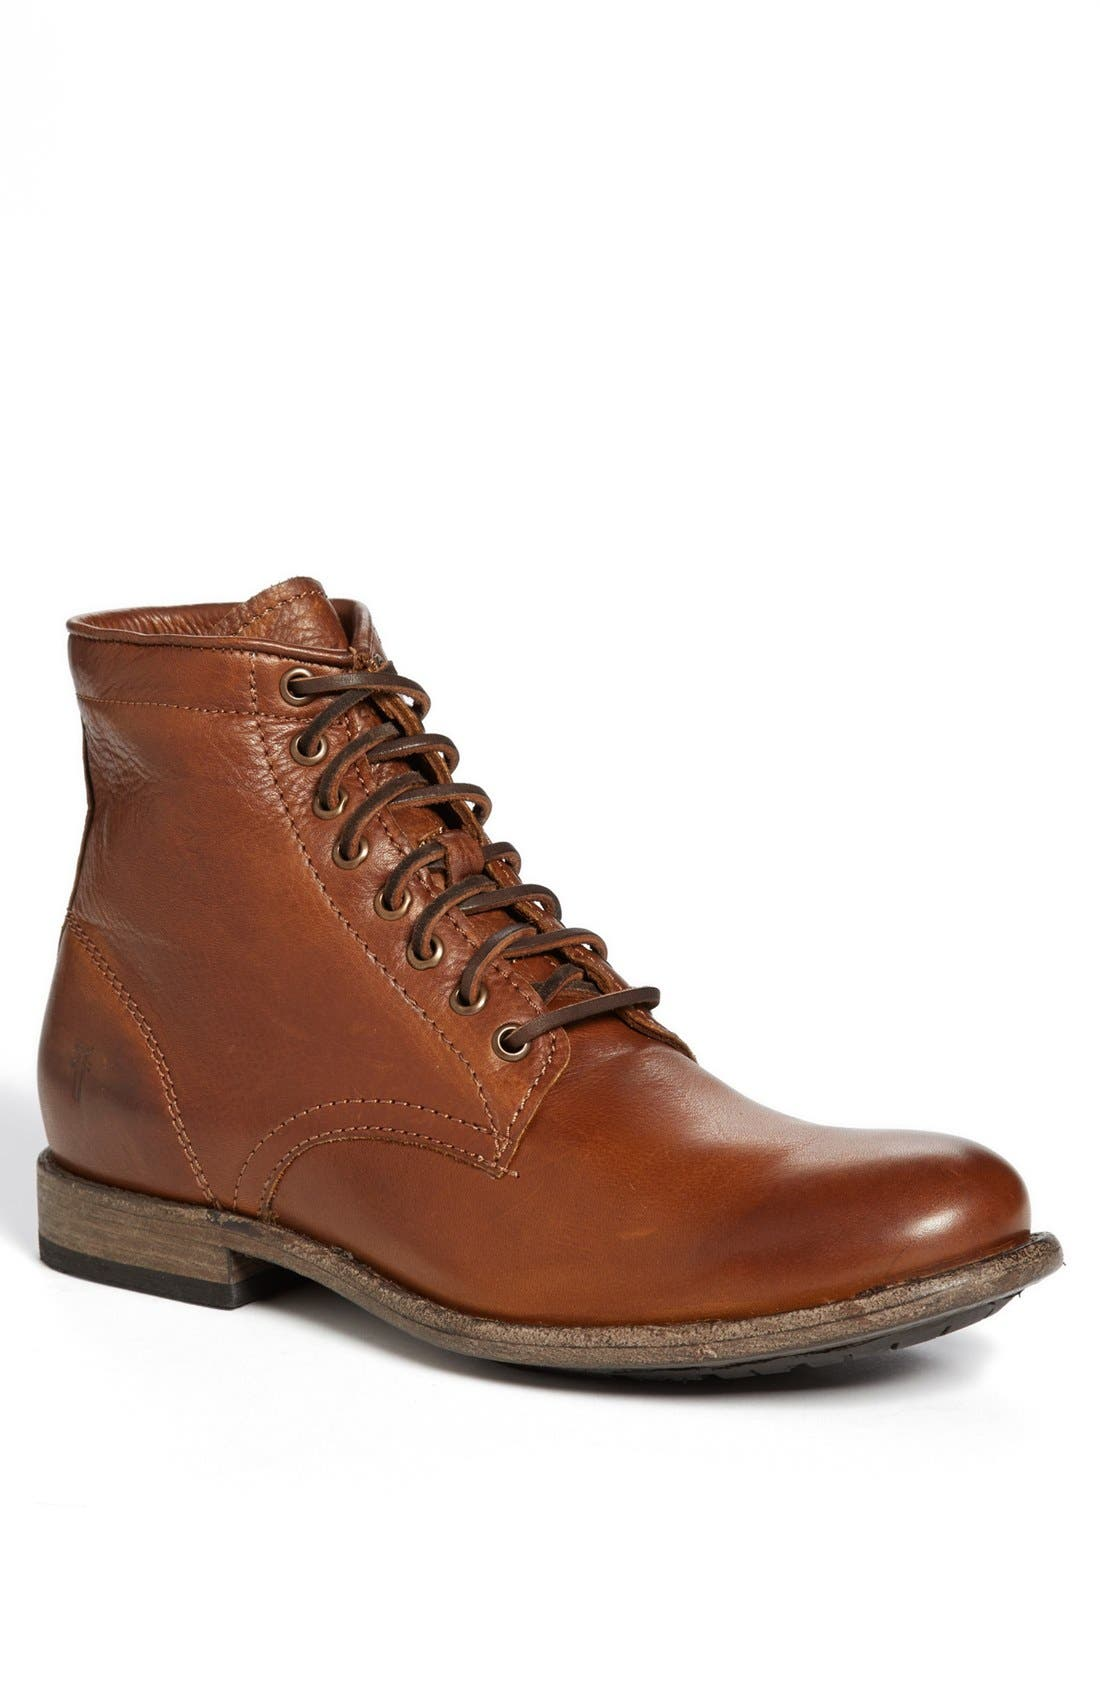 Alternate Image 1 Selected - Frye 'Tyler' Plain Toe Boot (Men) (Regular Retail Price: $318.00)